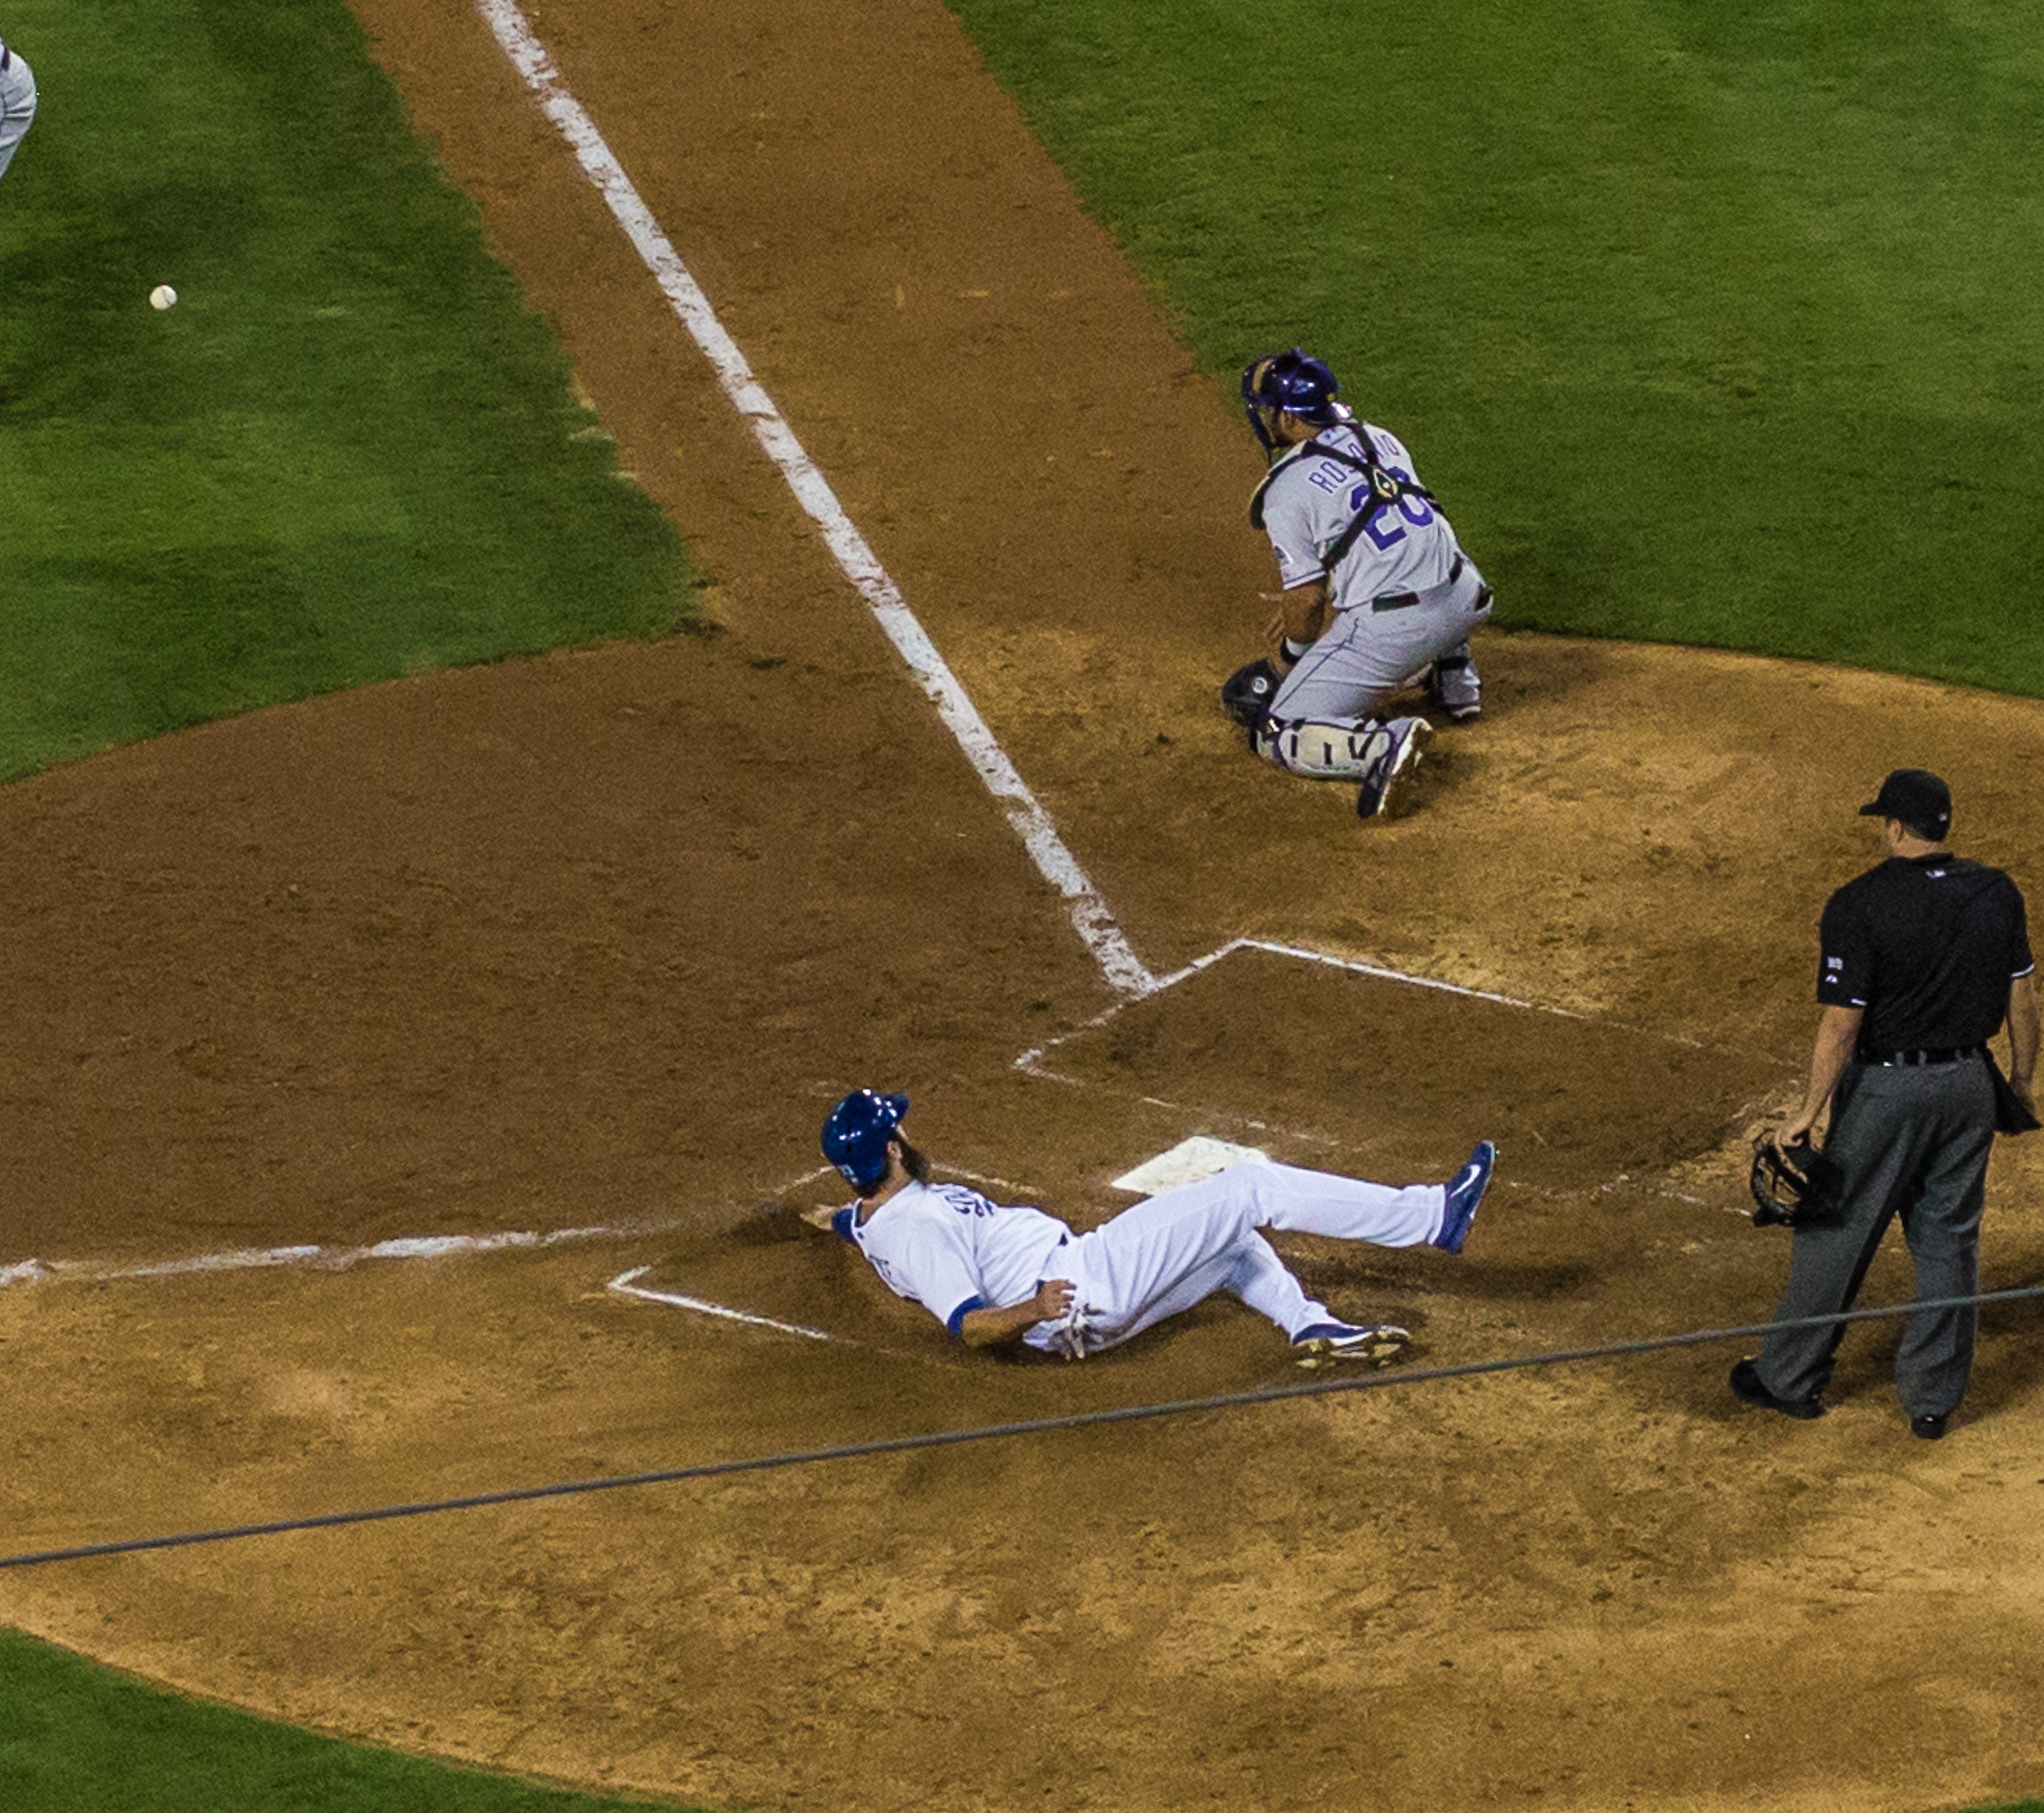 Scott Van Slyke sliding into home